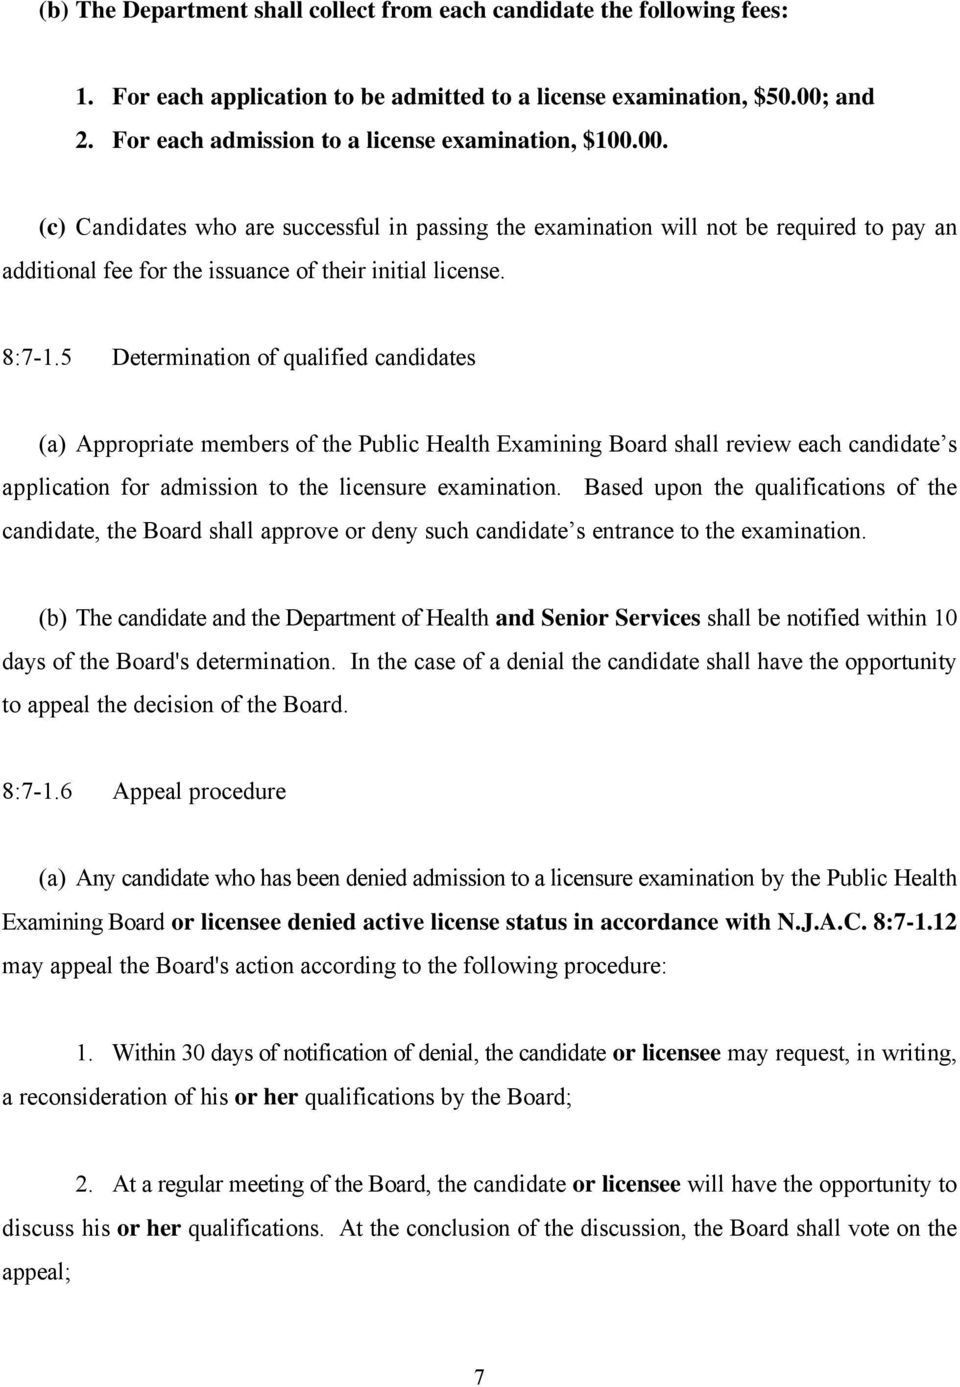 8:7-1.5 Determination of qualified candidates (a) Appropriate members of the Public Health Examining Board shall review each candidate s application for admission to the licensure examination.